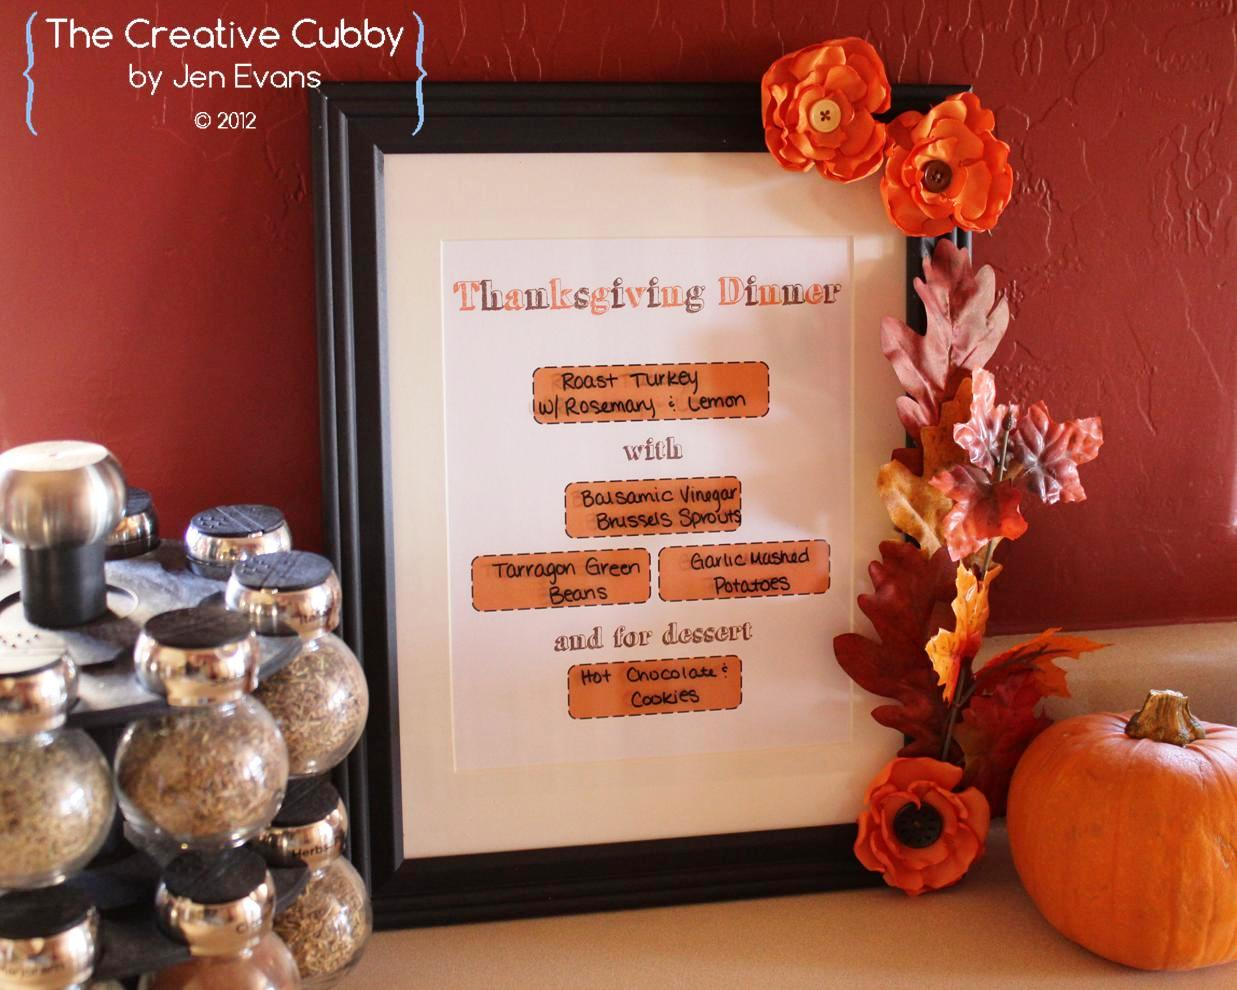 photograph relating to Printable Thanksgiving Menu called The Innovative Cubby: Thanksgiving Menu Creating Printables